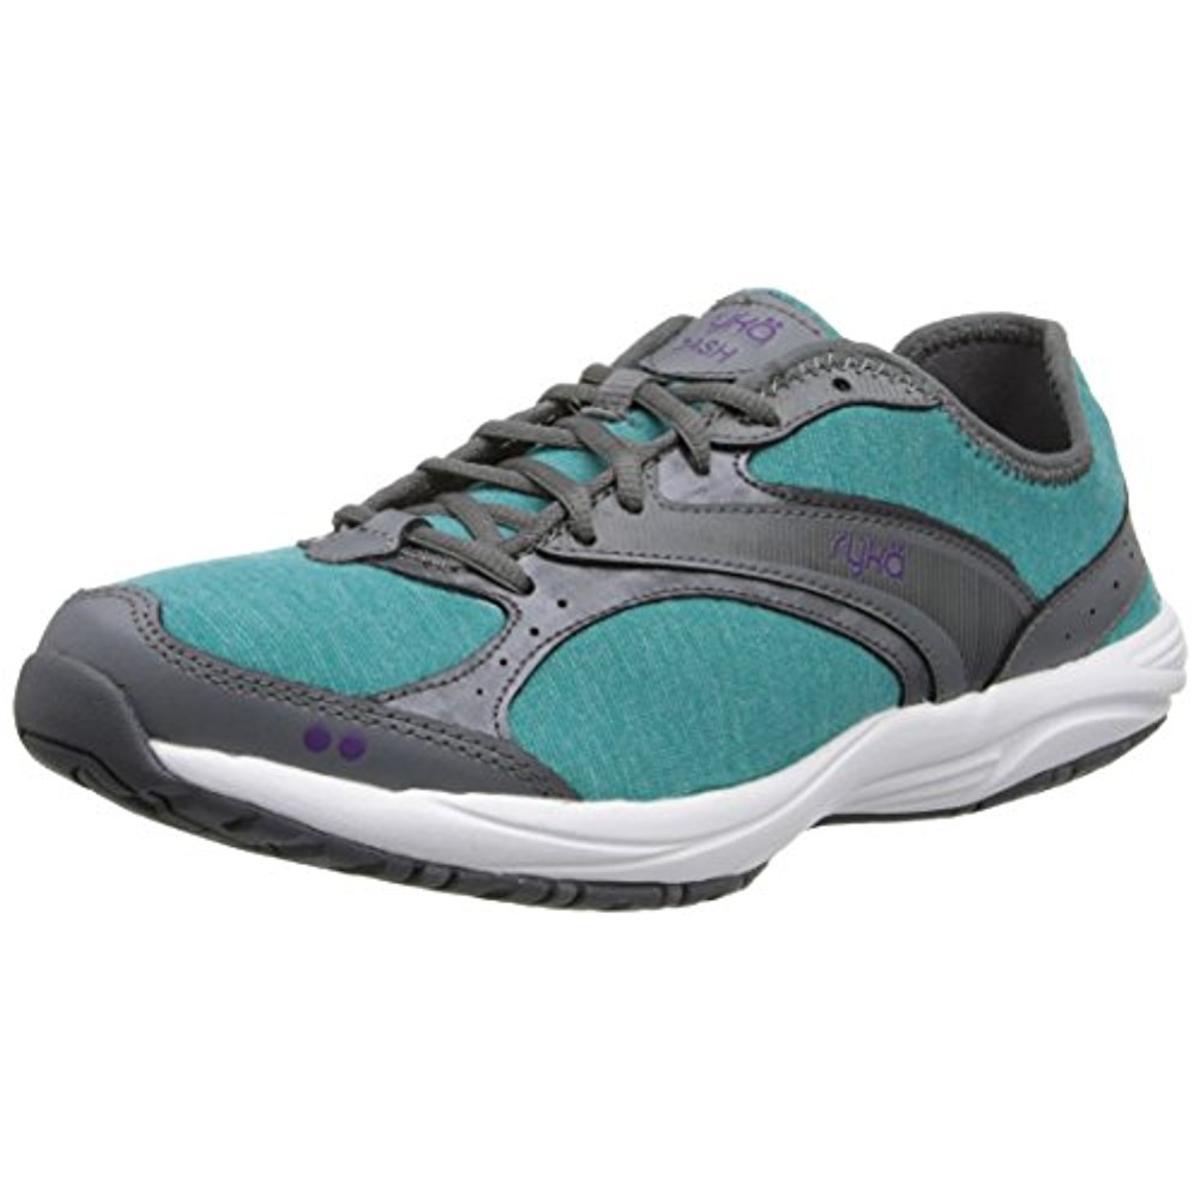 From rykä women's running shoes, to training shoes, and comfort walking shoes, you're bound to find something to your liking. Throw in a fresh new style of rykä women's athletic clothing ranging from women's tops and bottoms, and you have a complete ensemble geared especially for you.